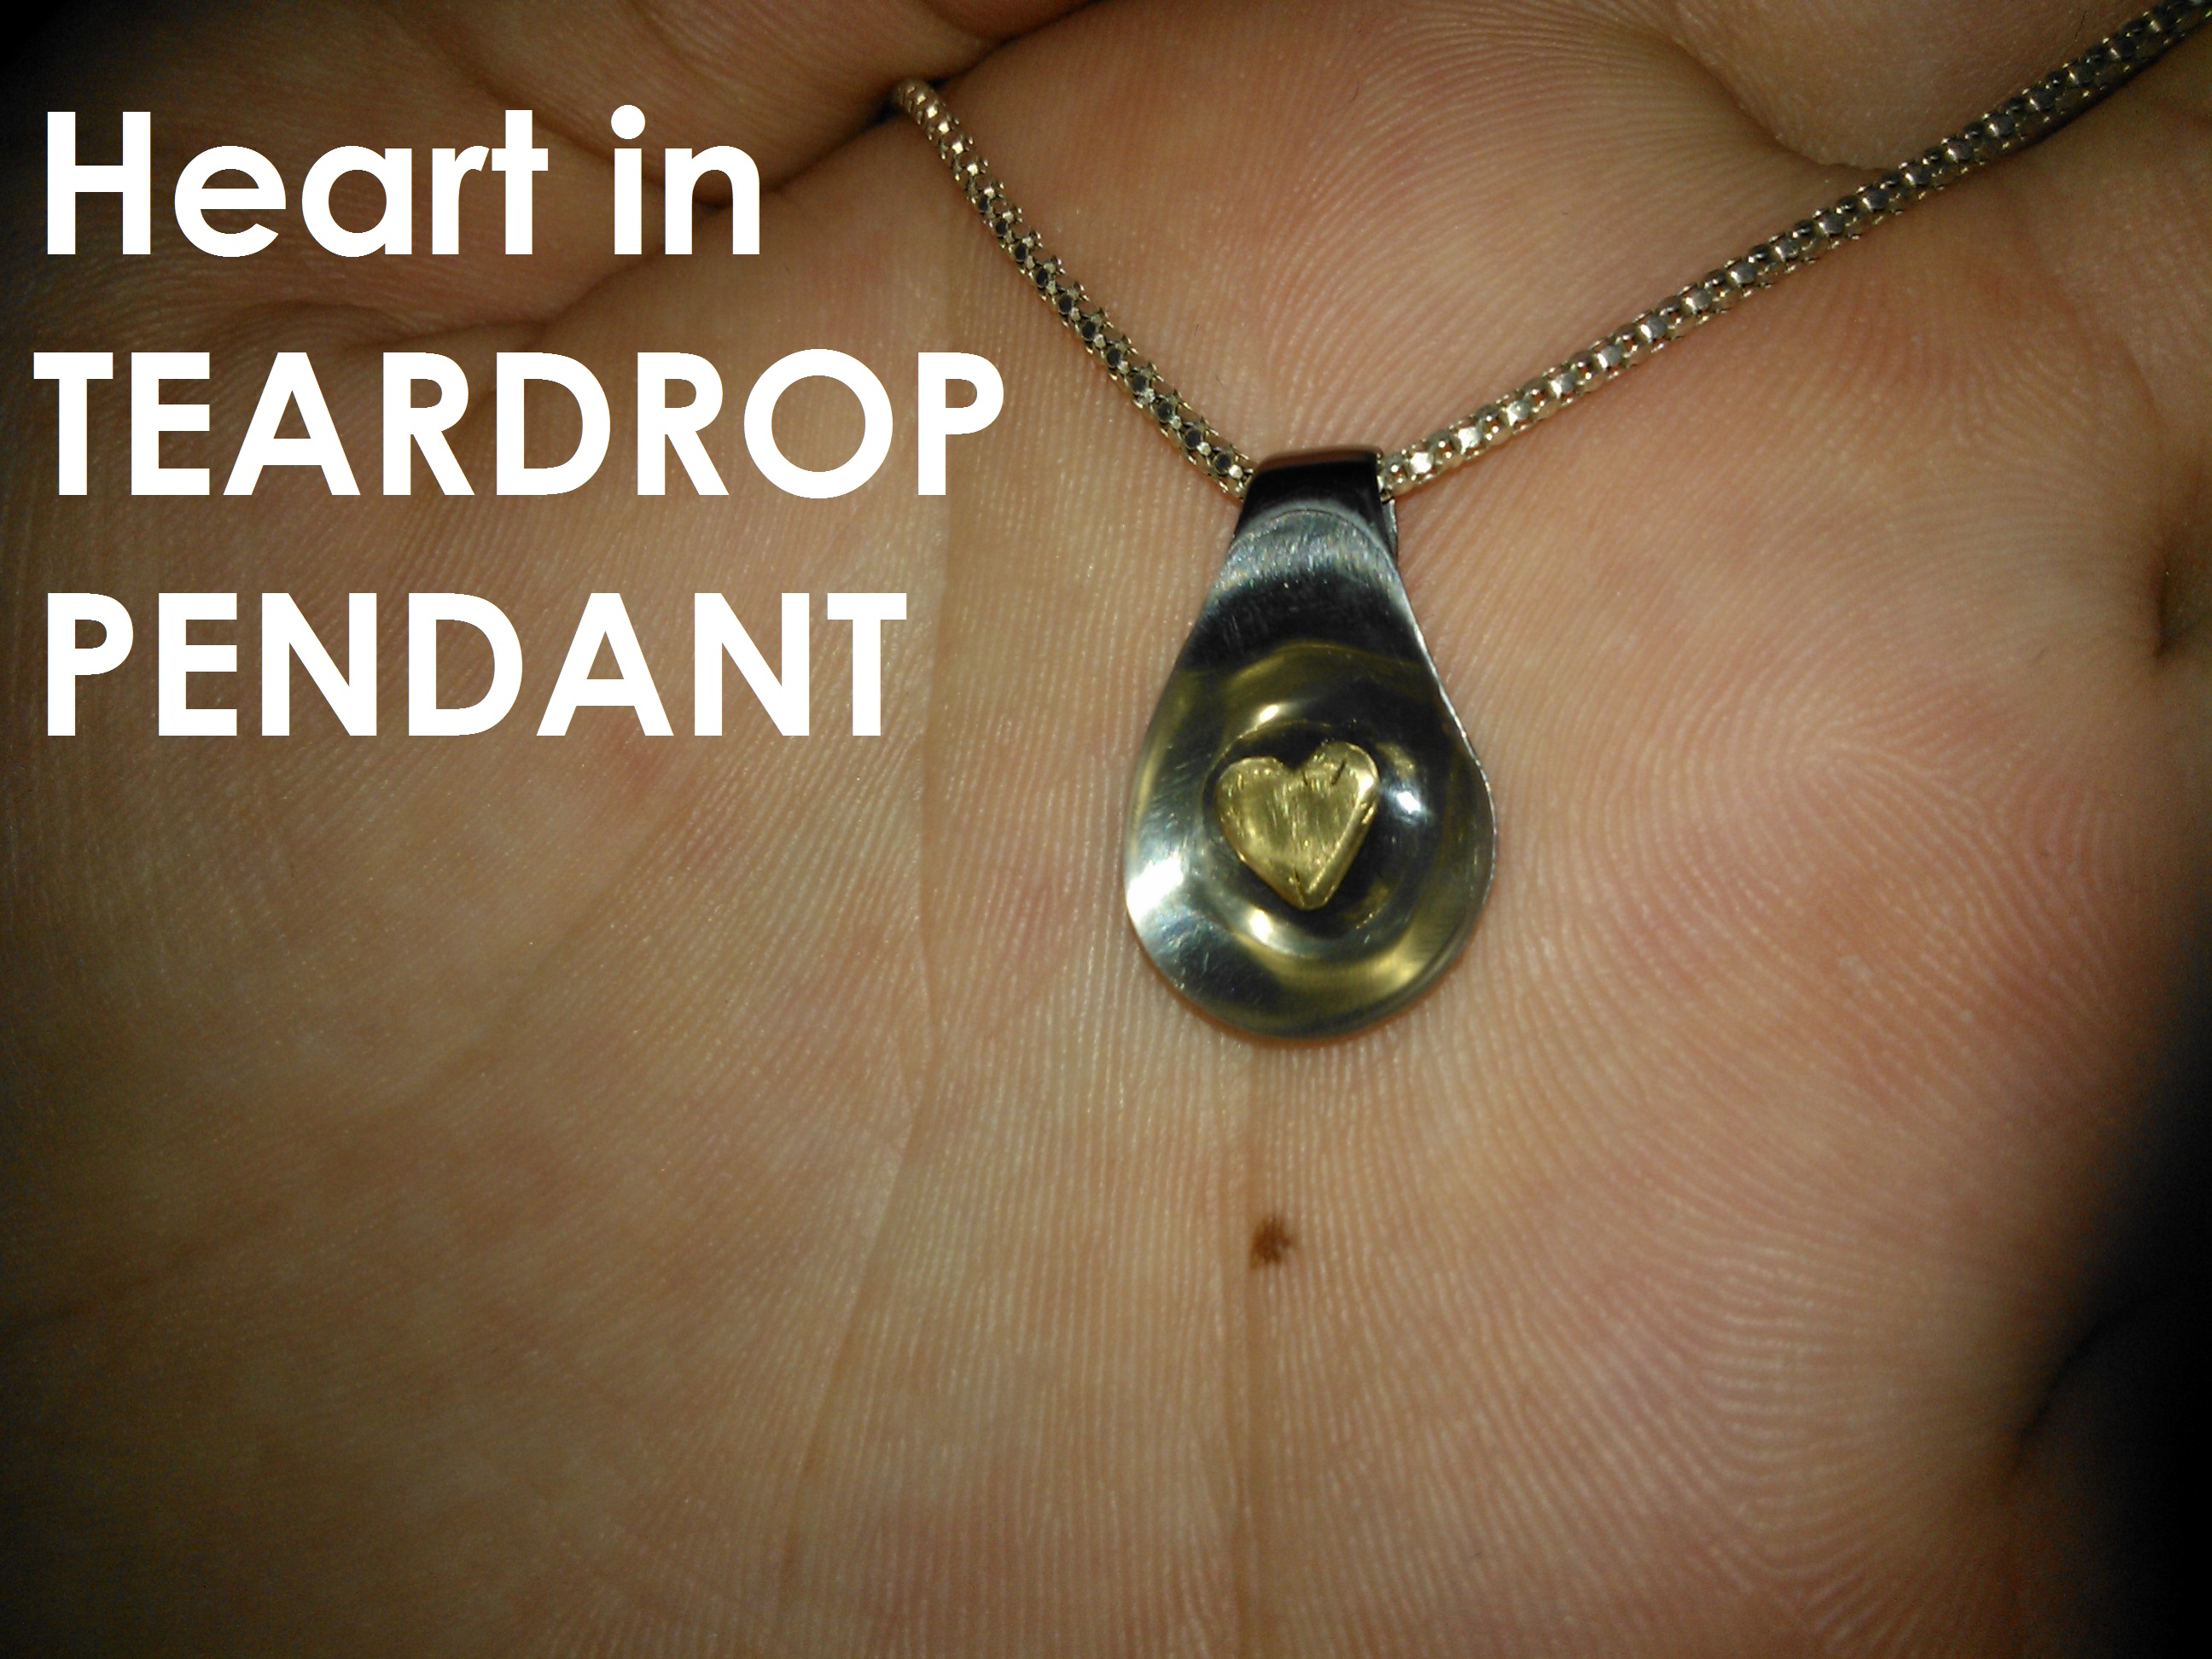 Heart in teardrop pendant for your love- How To